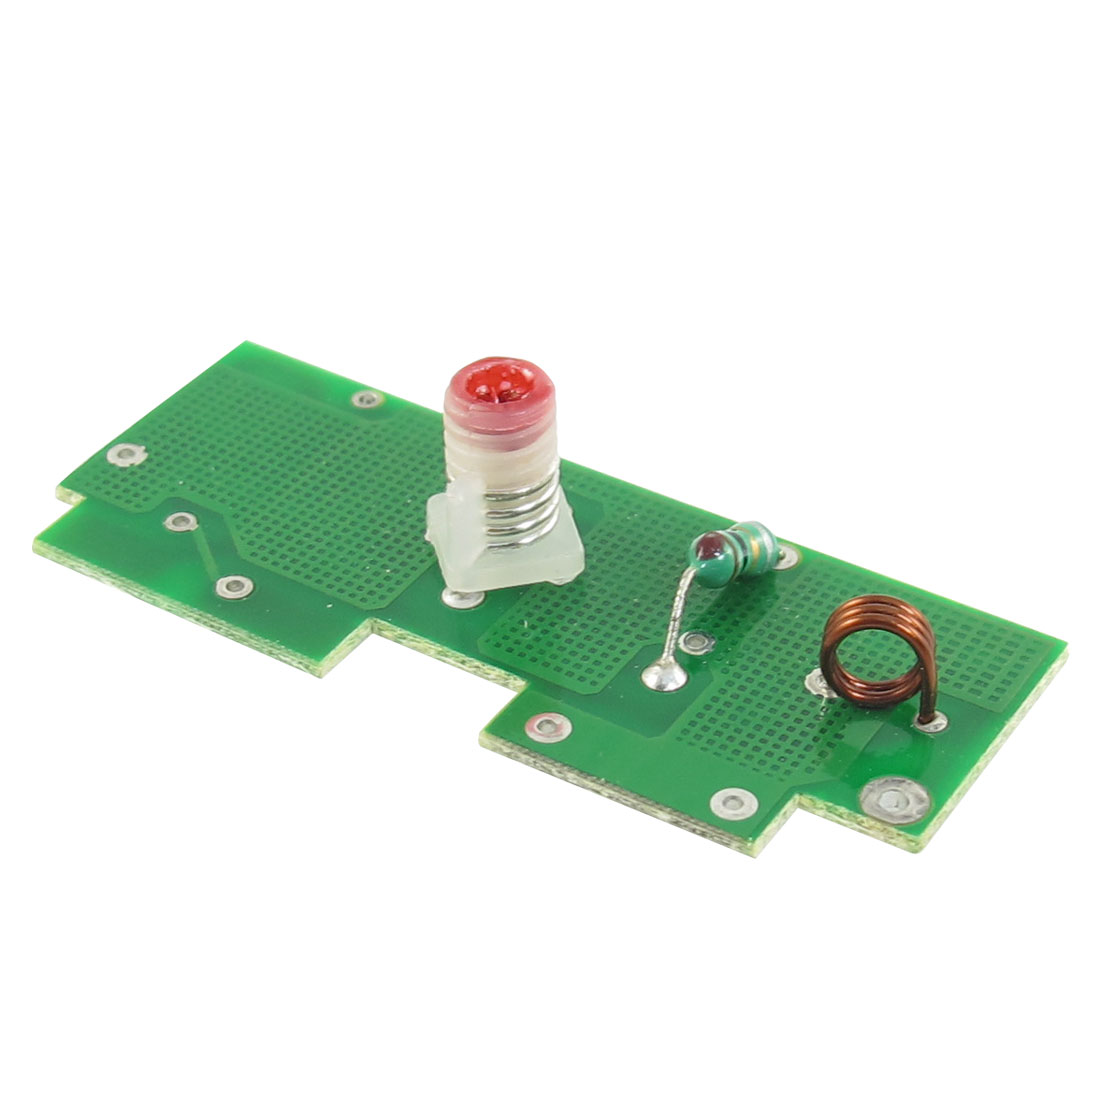 DC 5V 2.5mA 250/450MHZ ASK/OOK -103dbm Wireless Receiver Module CDR01